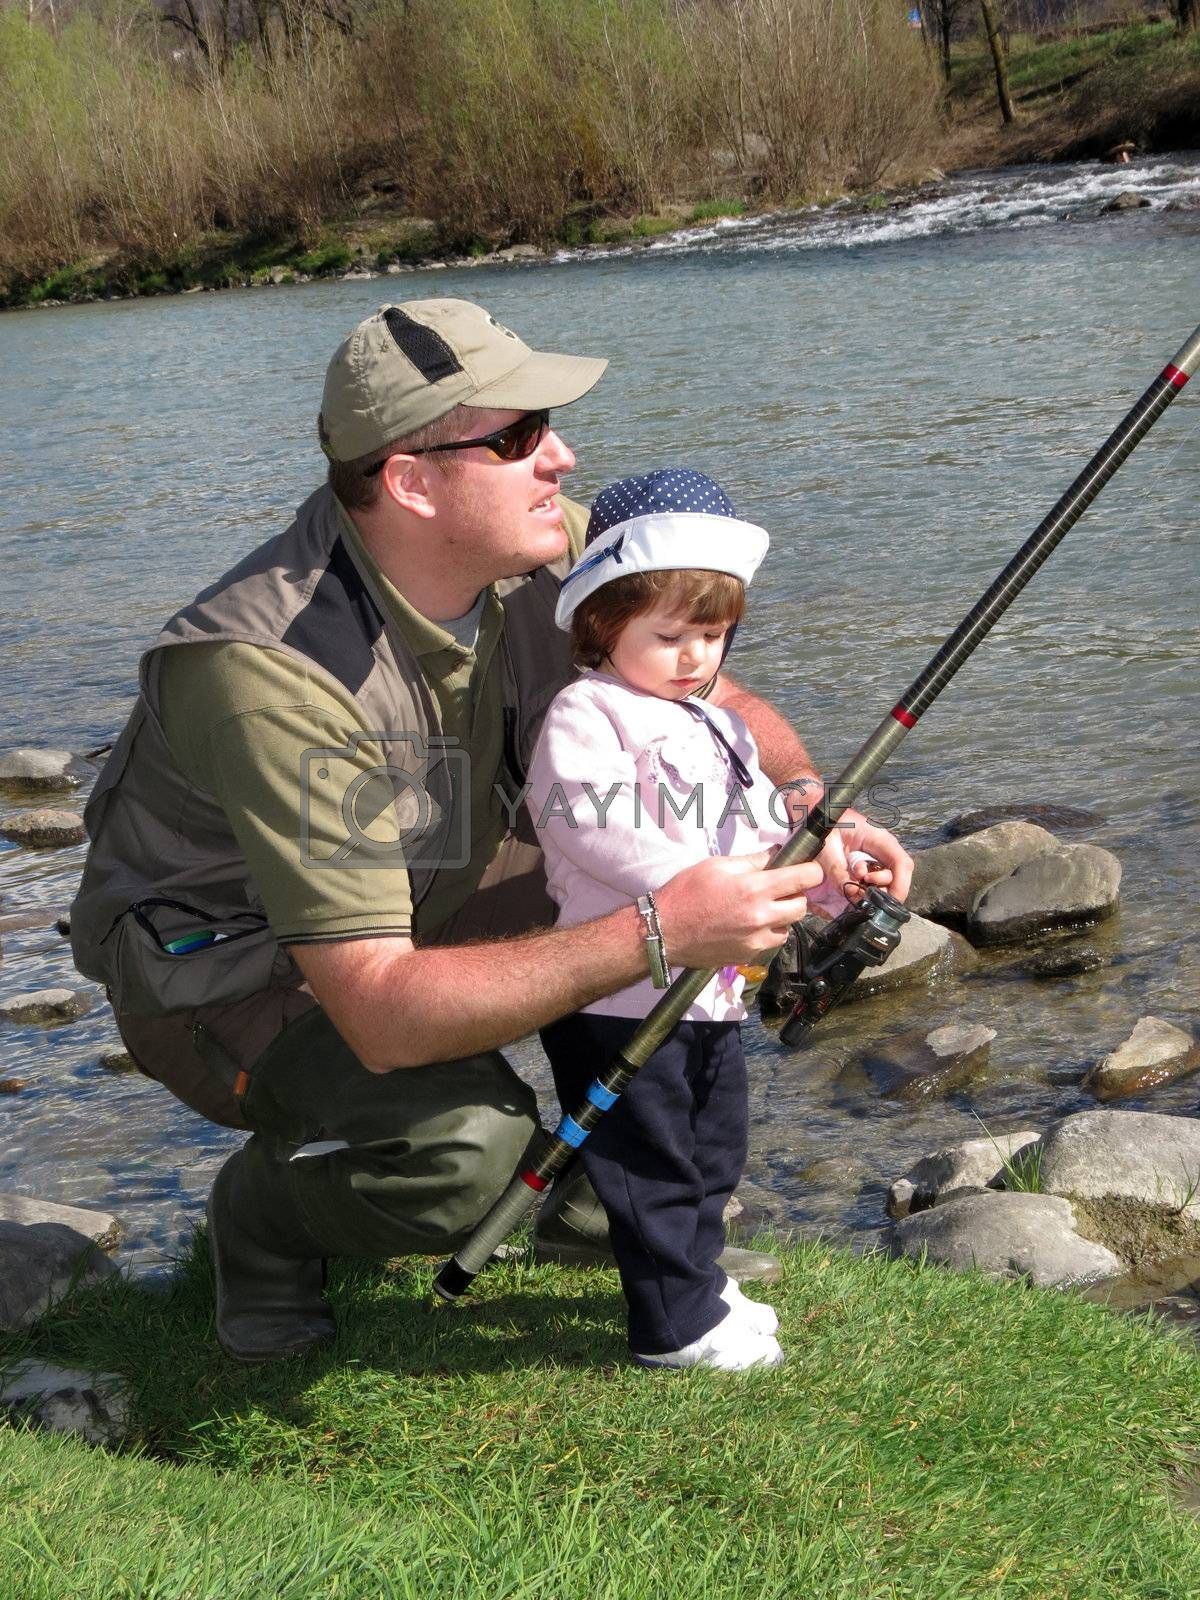 father and daughter fishing on river on summer day